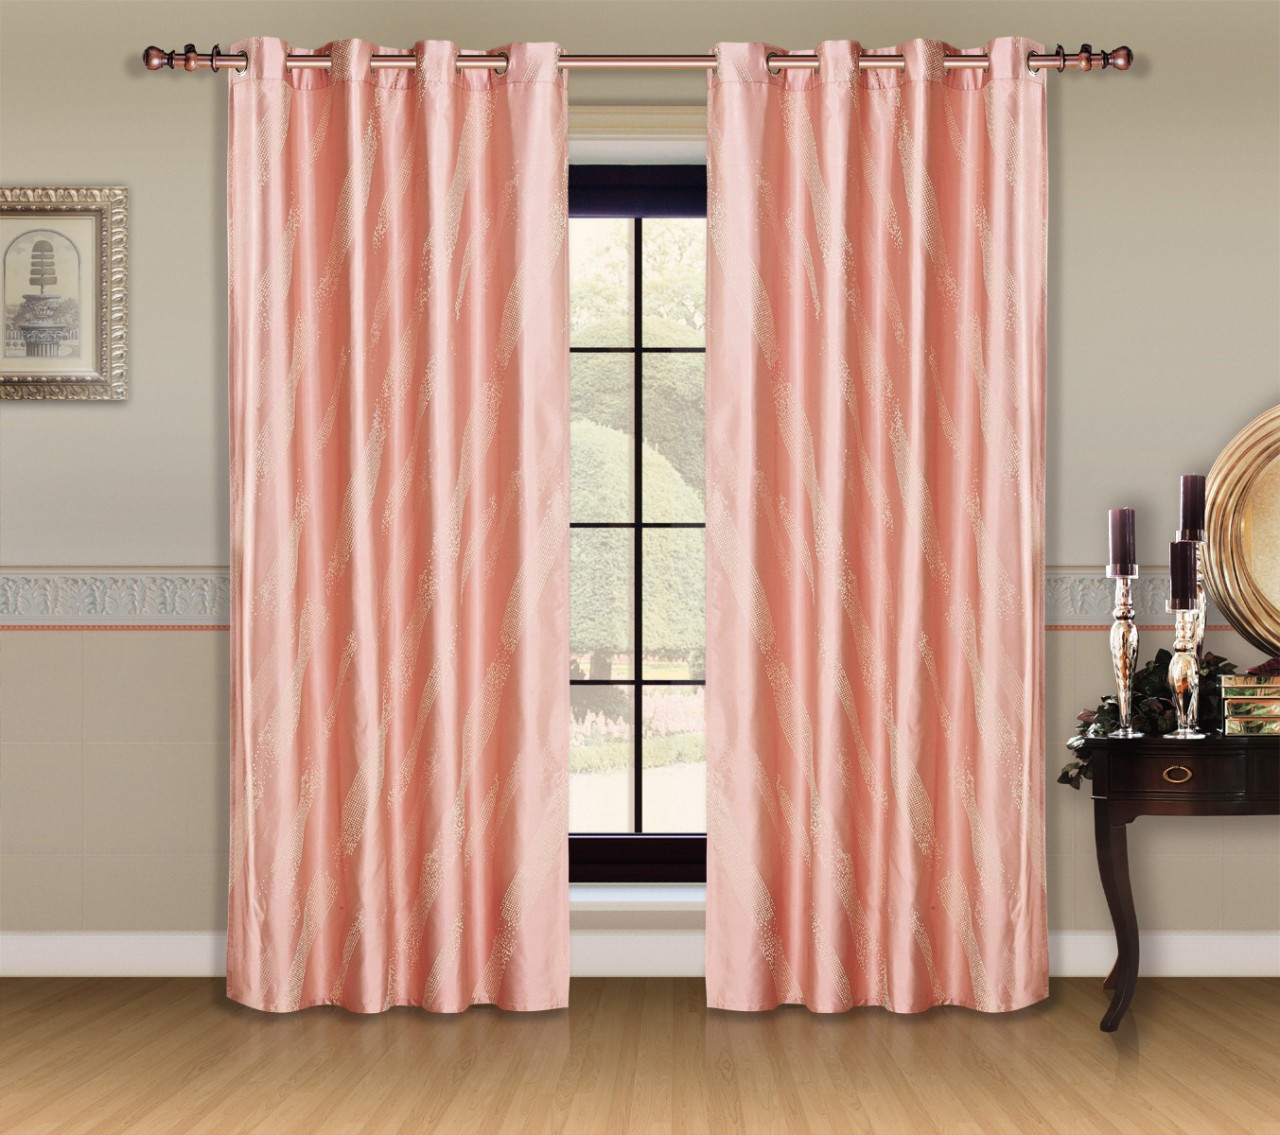 DMC460 Capri Dolce Mela Window Treatments Drapes Curtain Panel